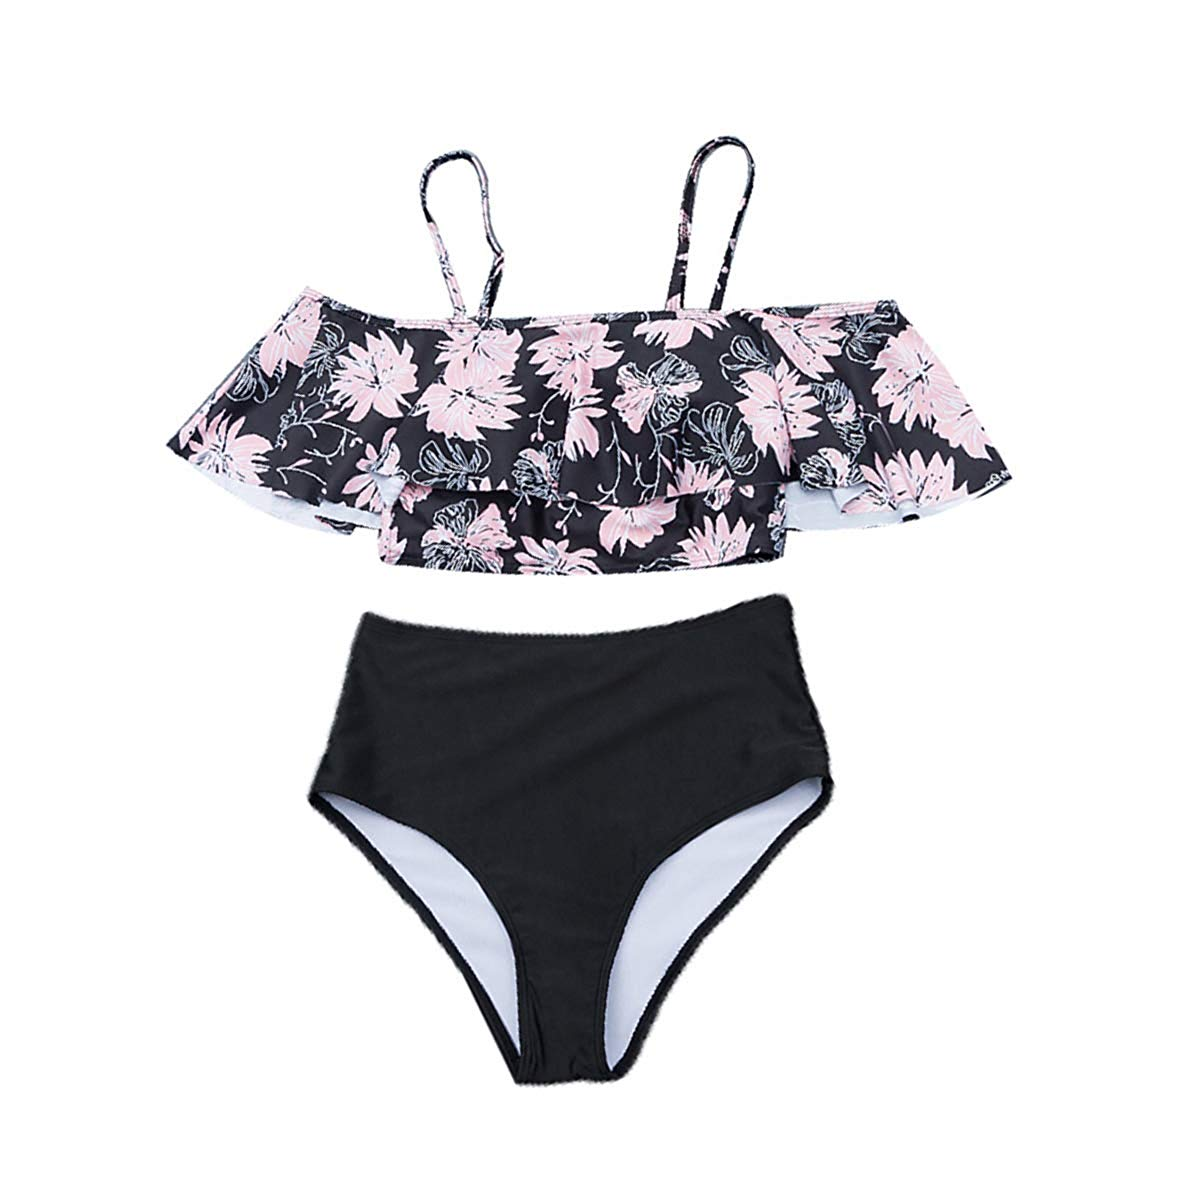 CORIRESHA Ruffled Top High Waist Swimwear